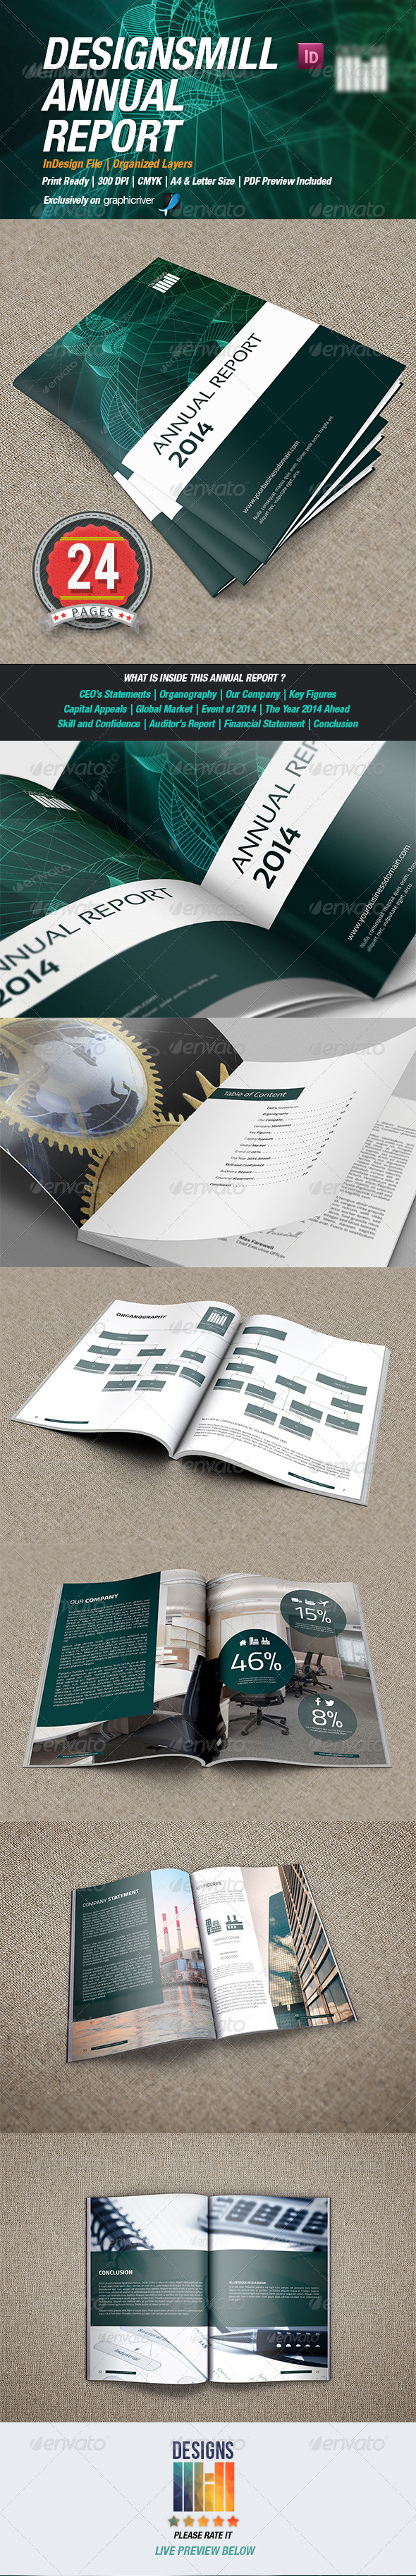 GraphicRiver DesignsMill Annual Report 8539510